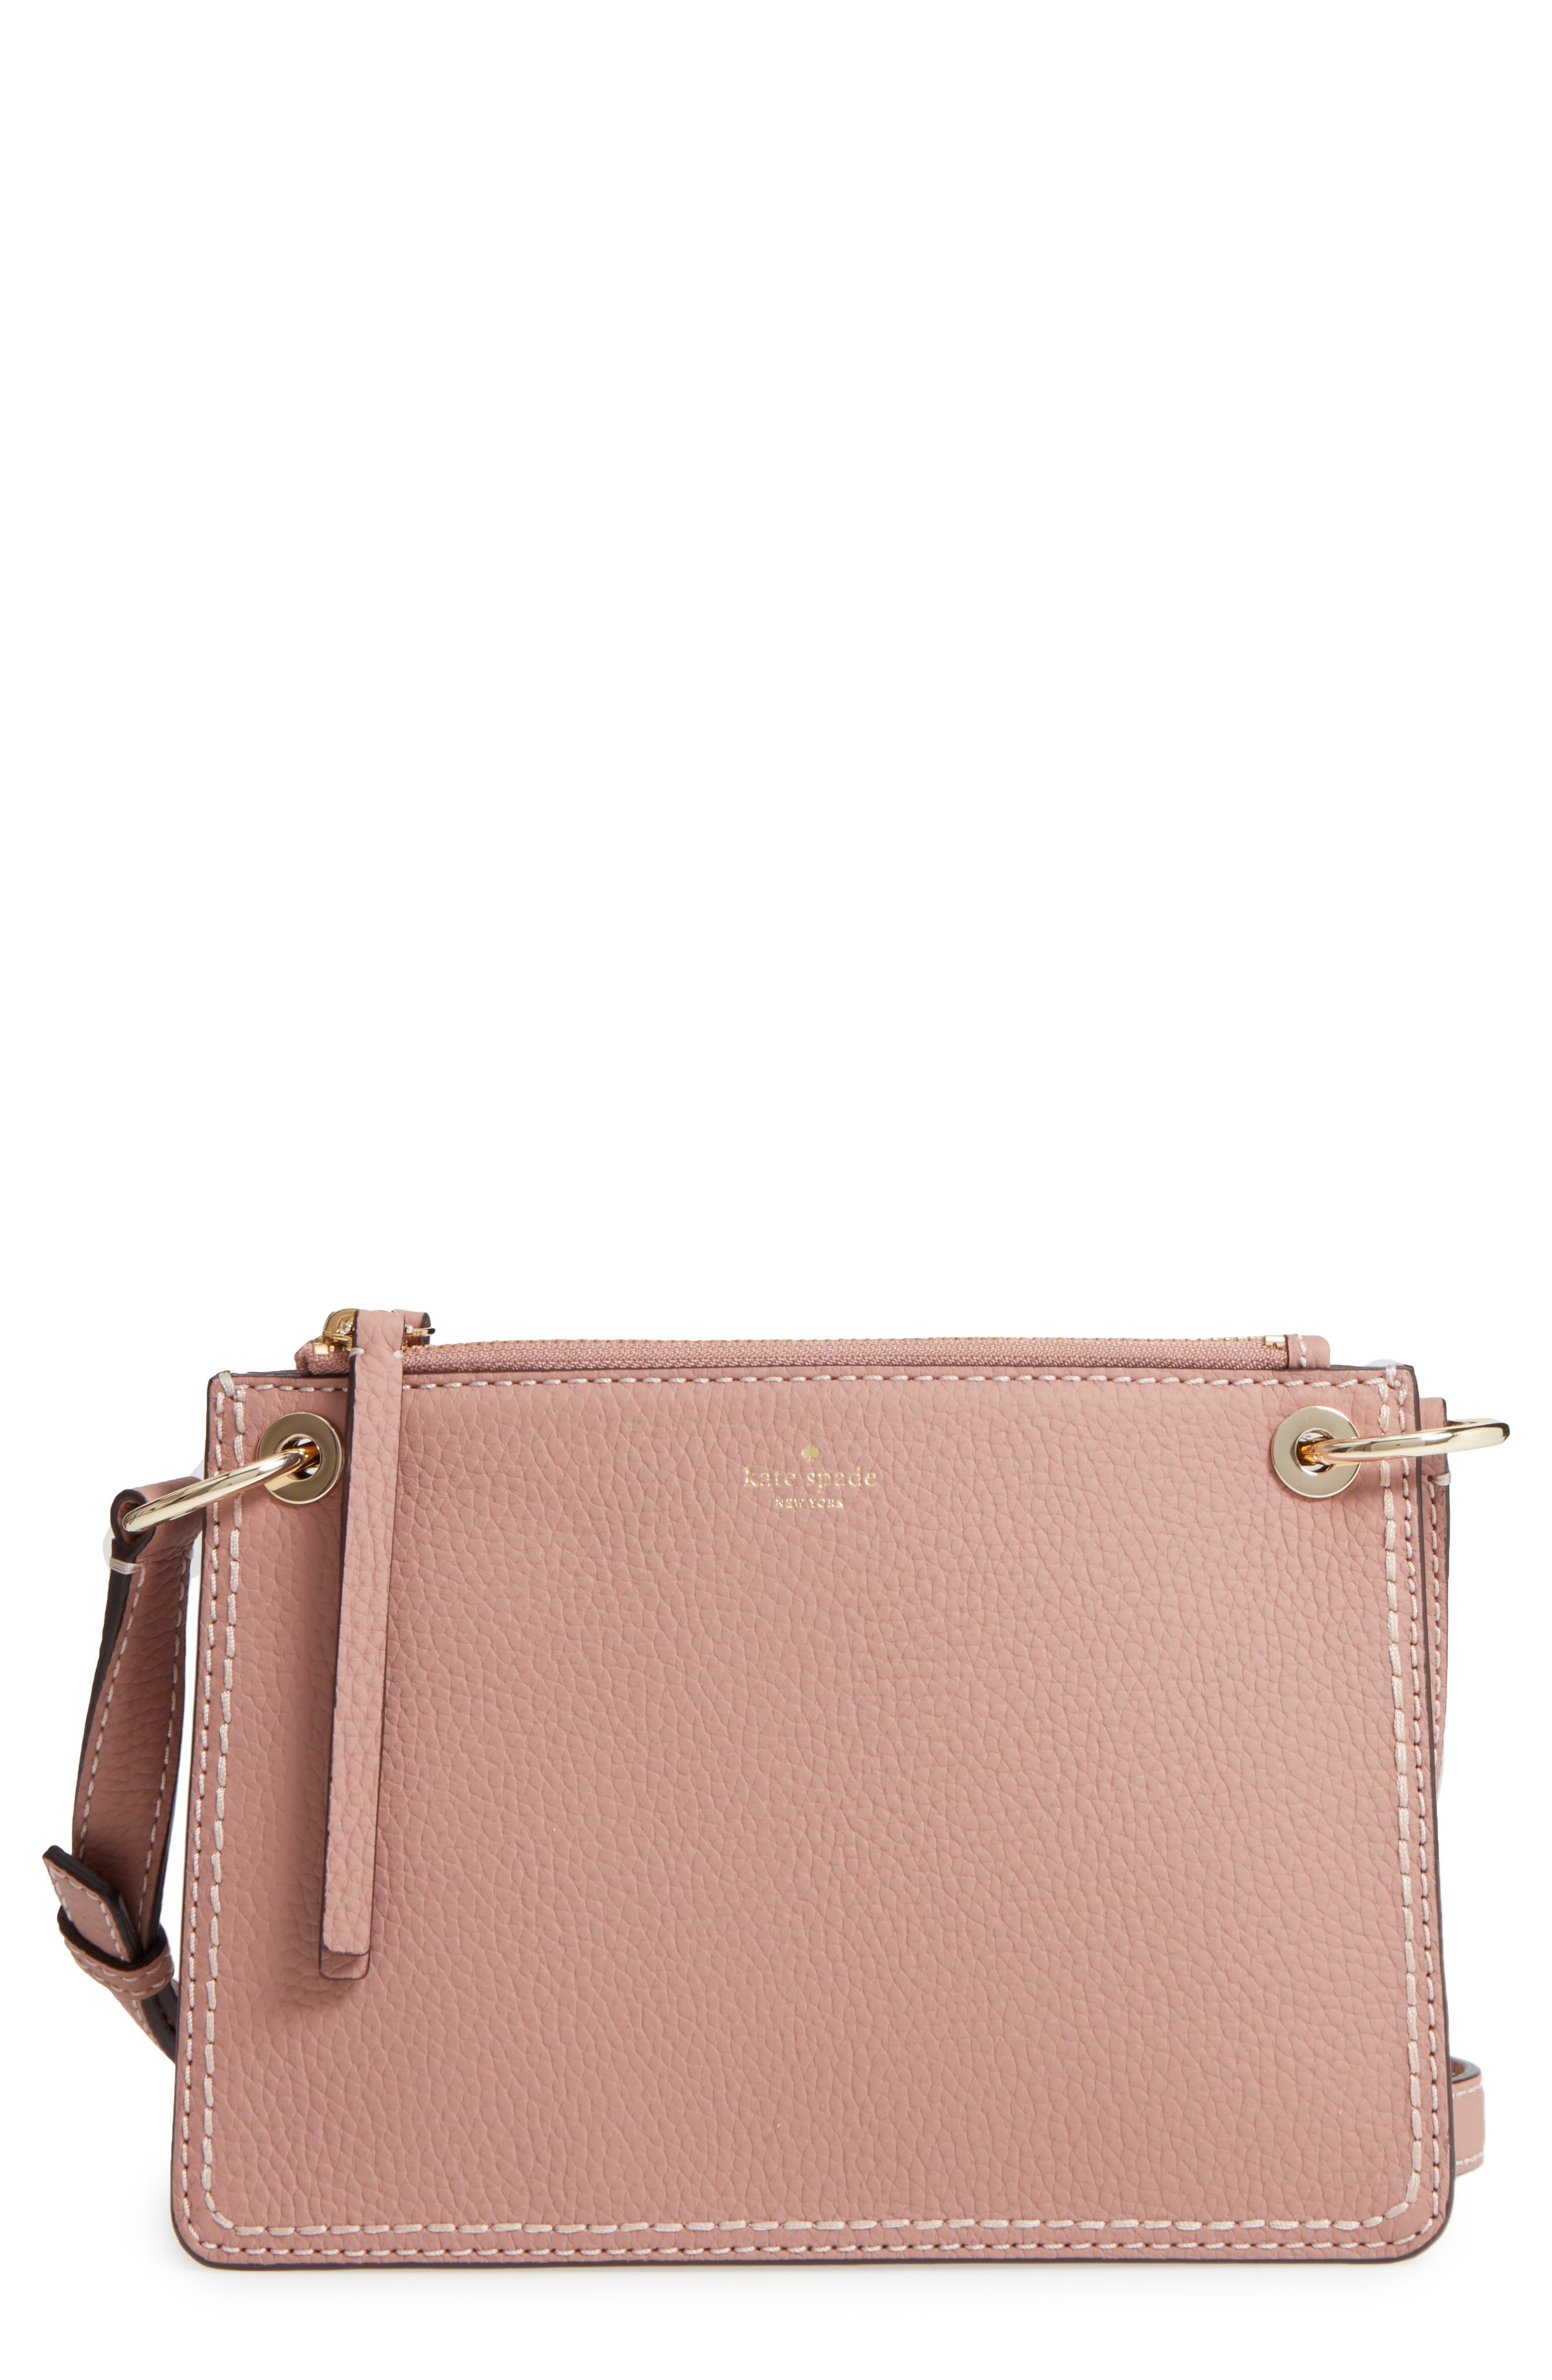 kate spade new york dunne lane - caro leather crossbody bag